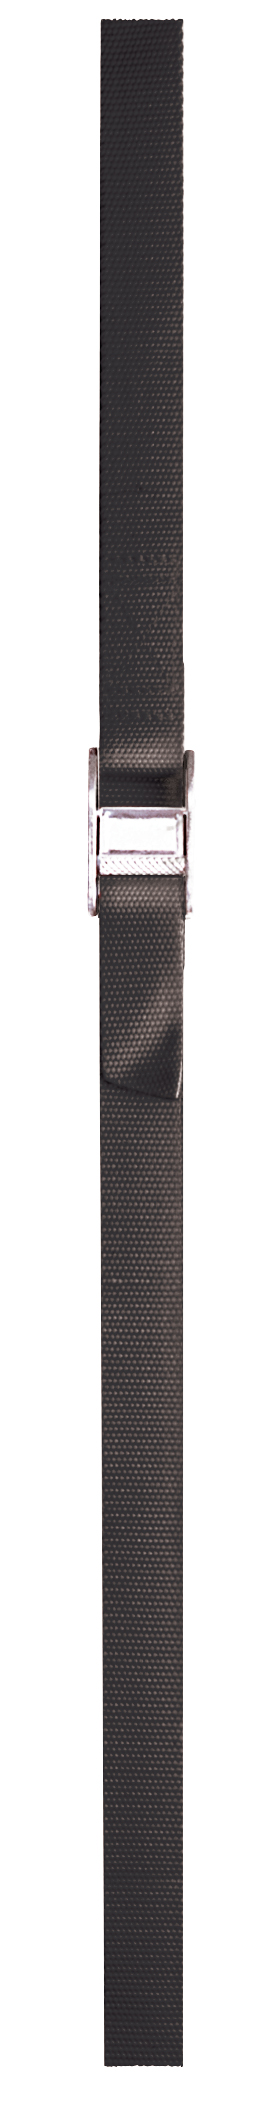 DOTTIE WS12 12FT WEB STRAP (BLACK)